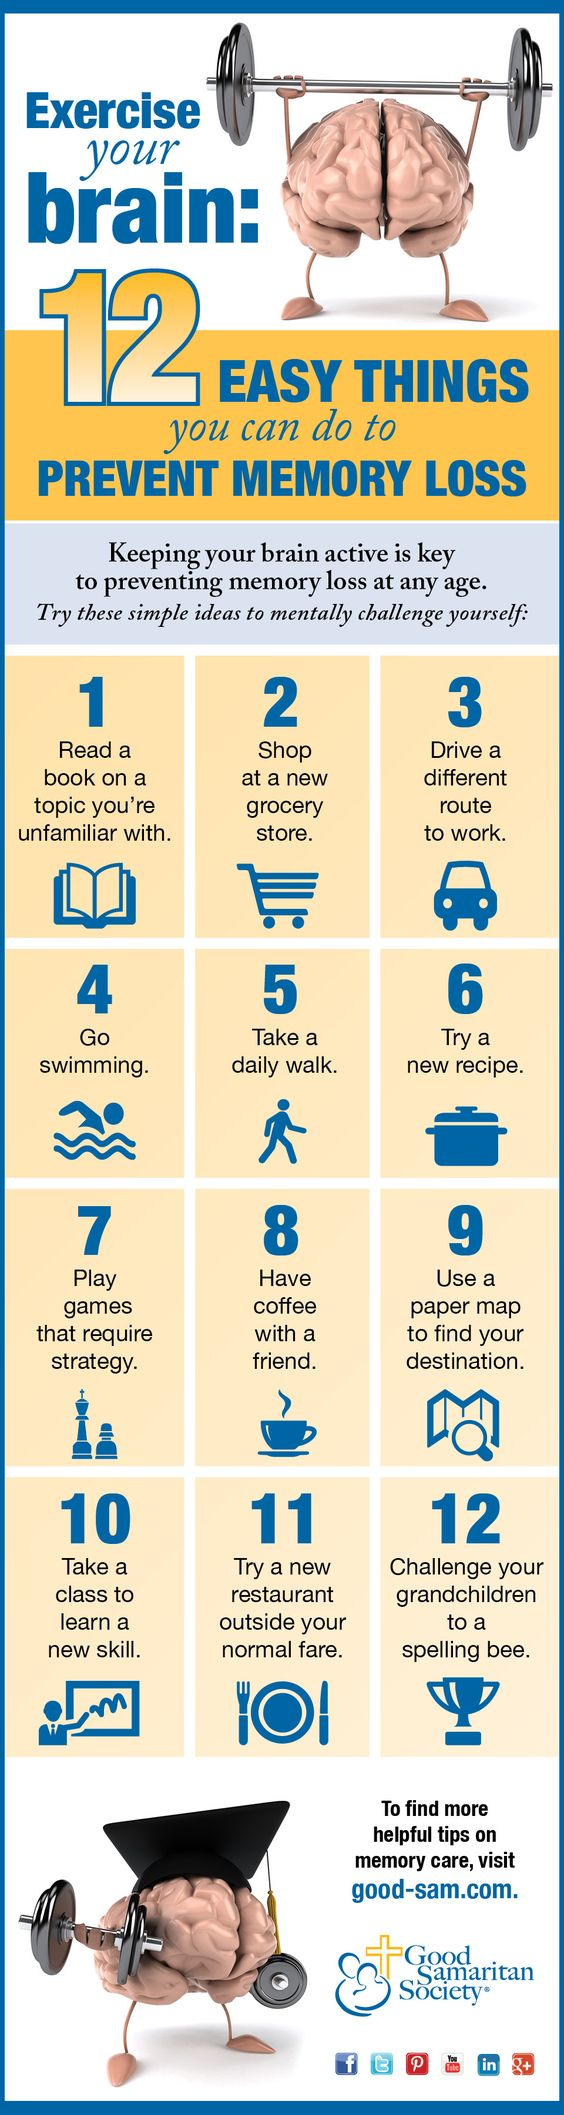 12 Easy Things you can do to Prevent Memory Loss. Source: Good Samaritan Society